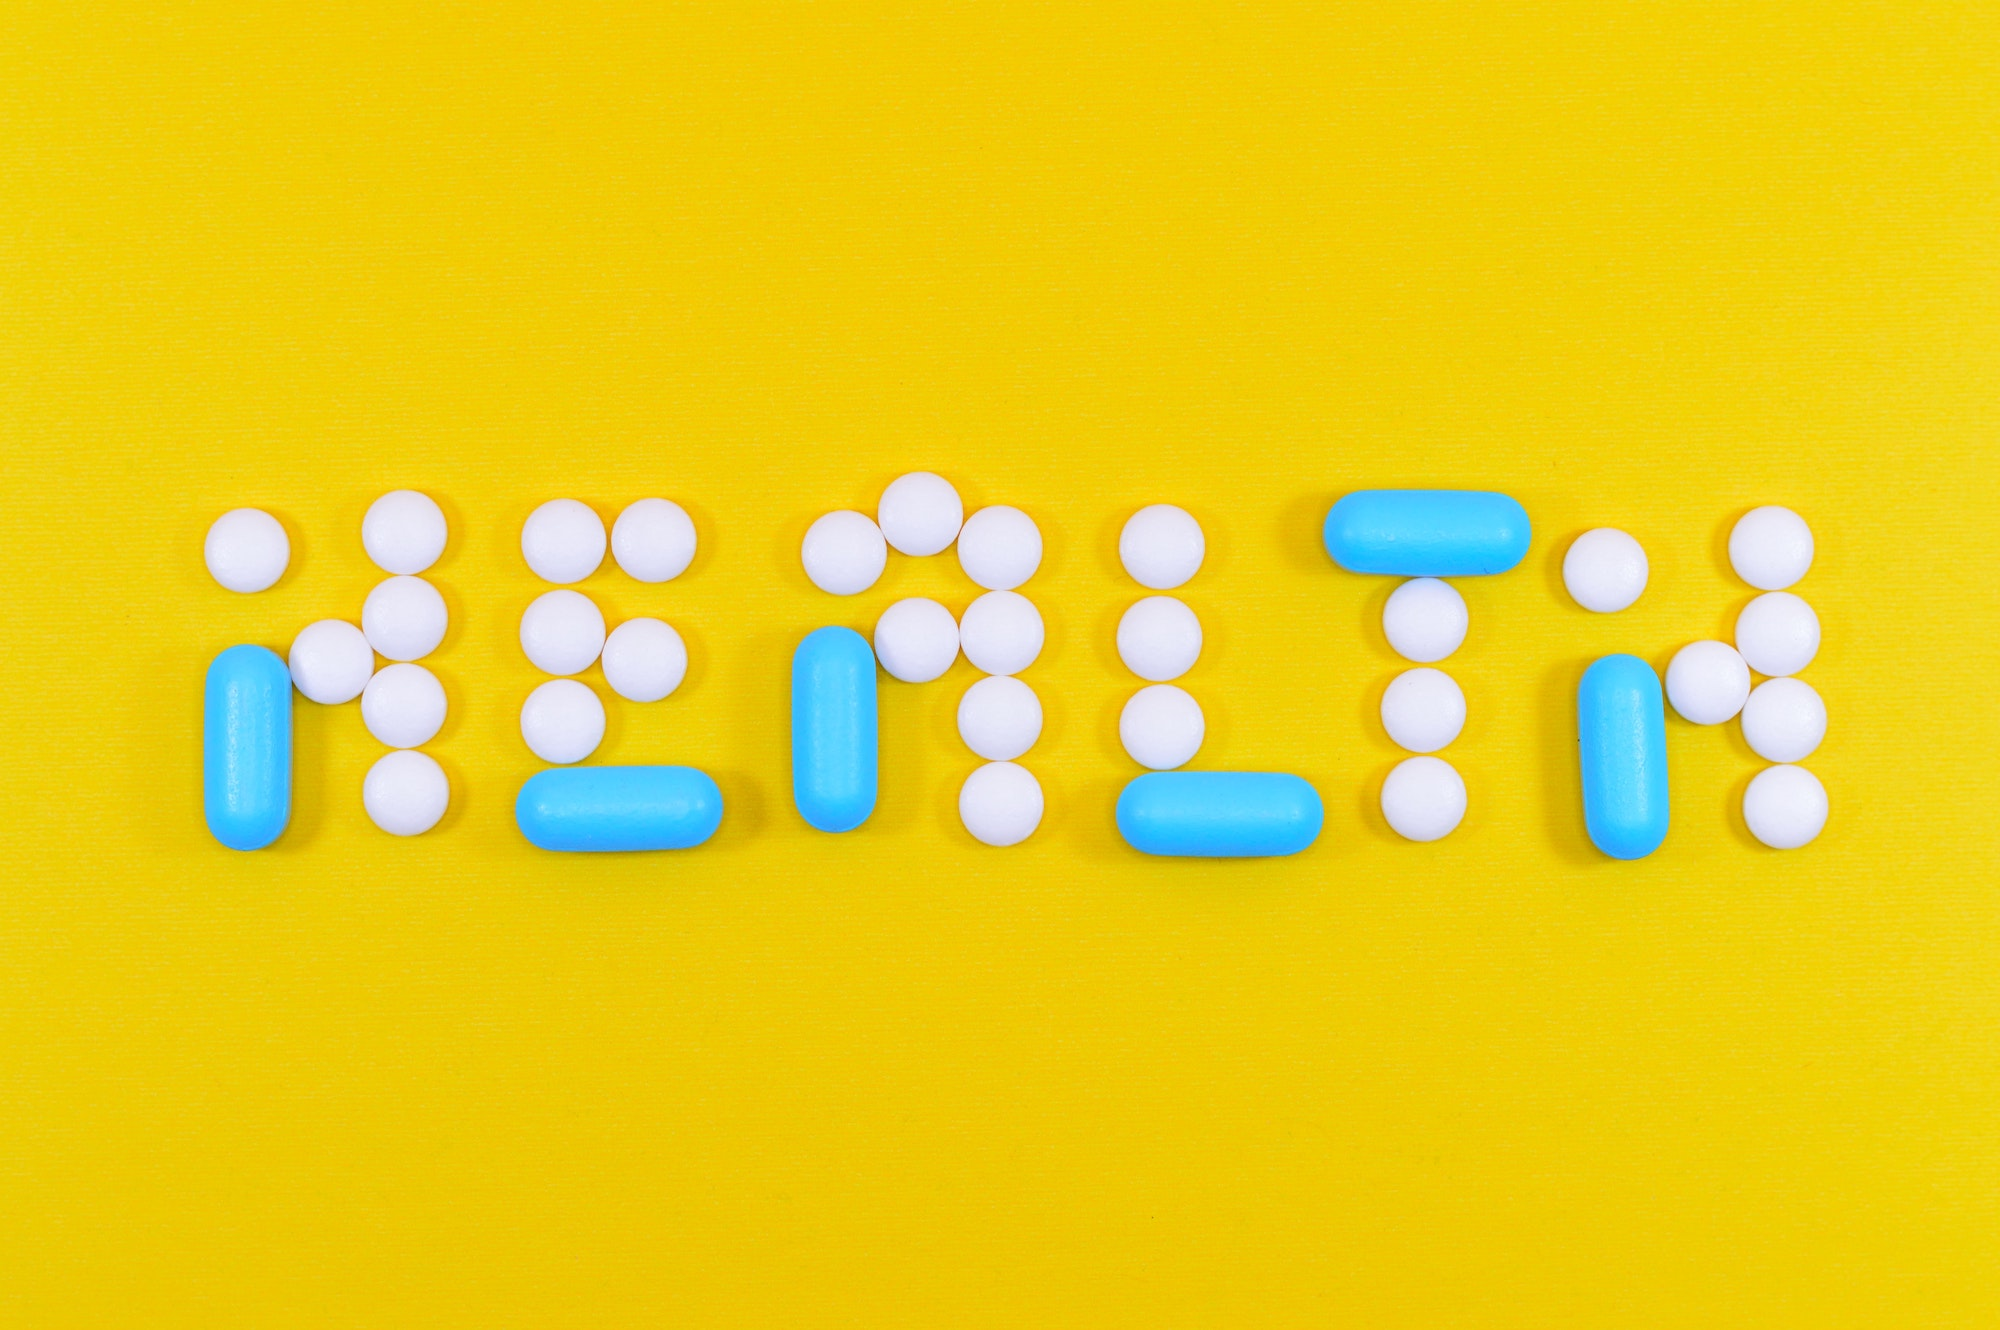 White circular pills and small blue capsule pills are arranged on a canary yellow background and spell the word HEALTH